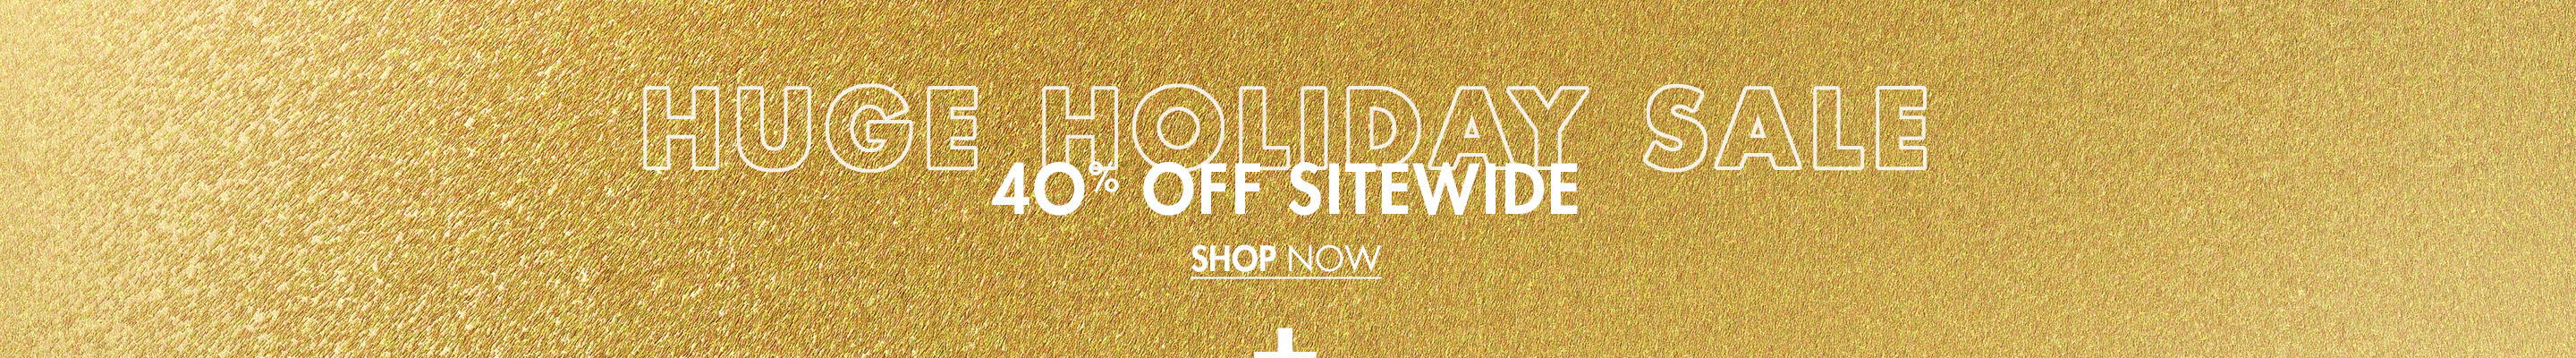 40% Off Sitewide